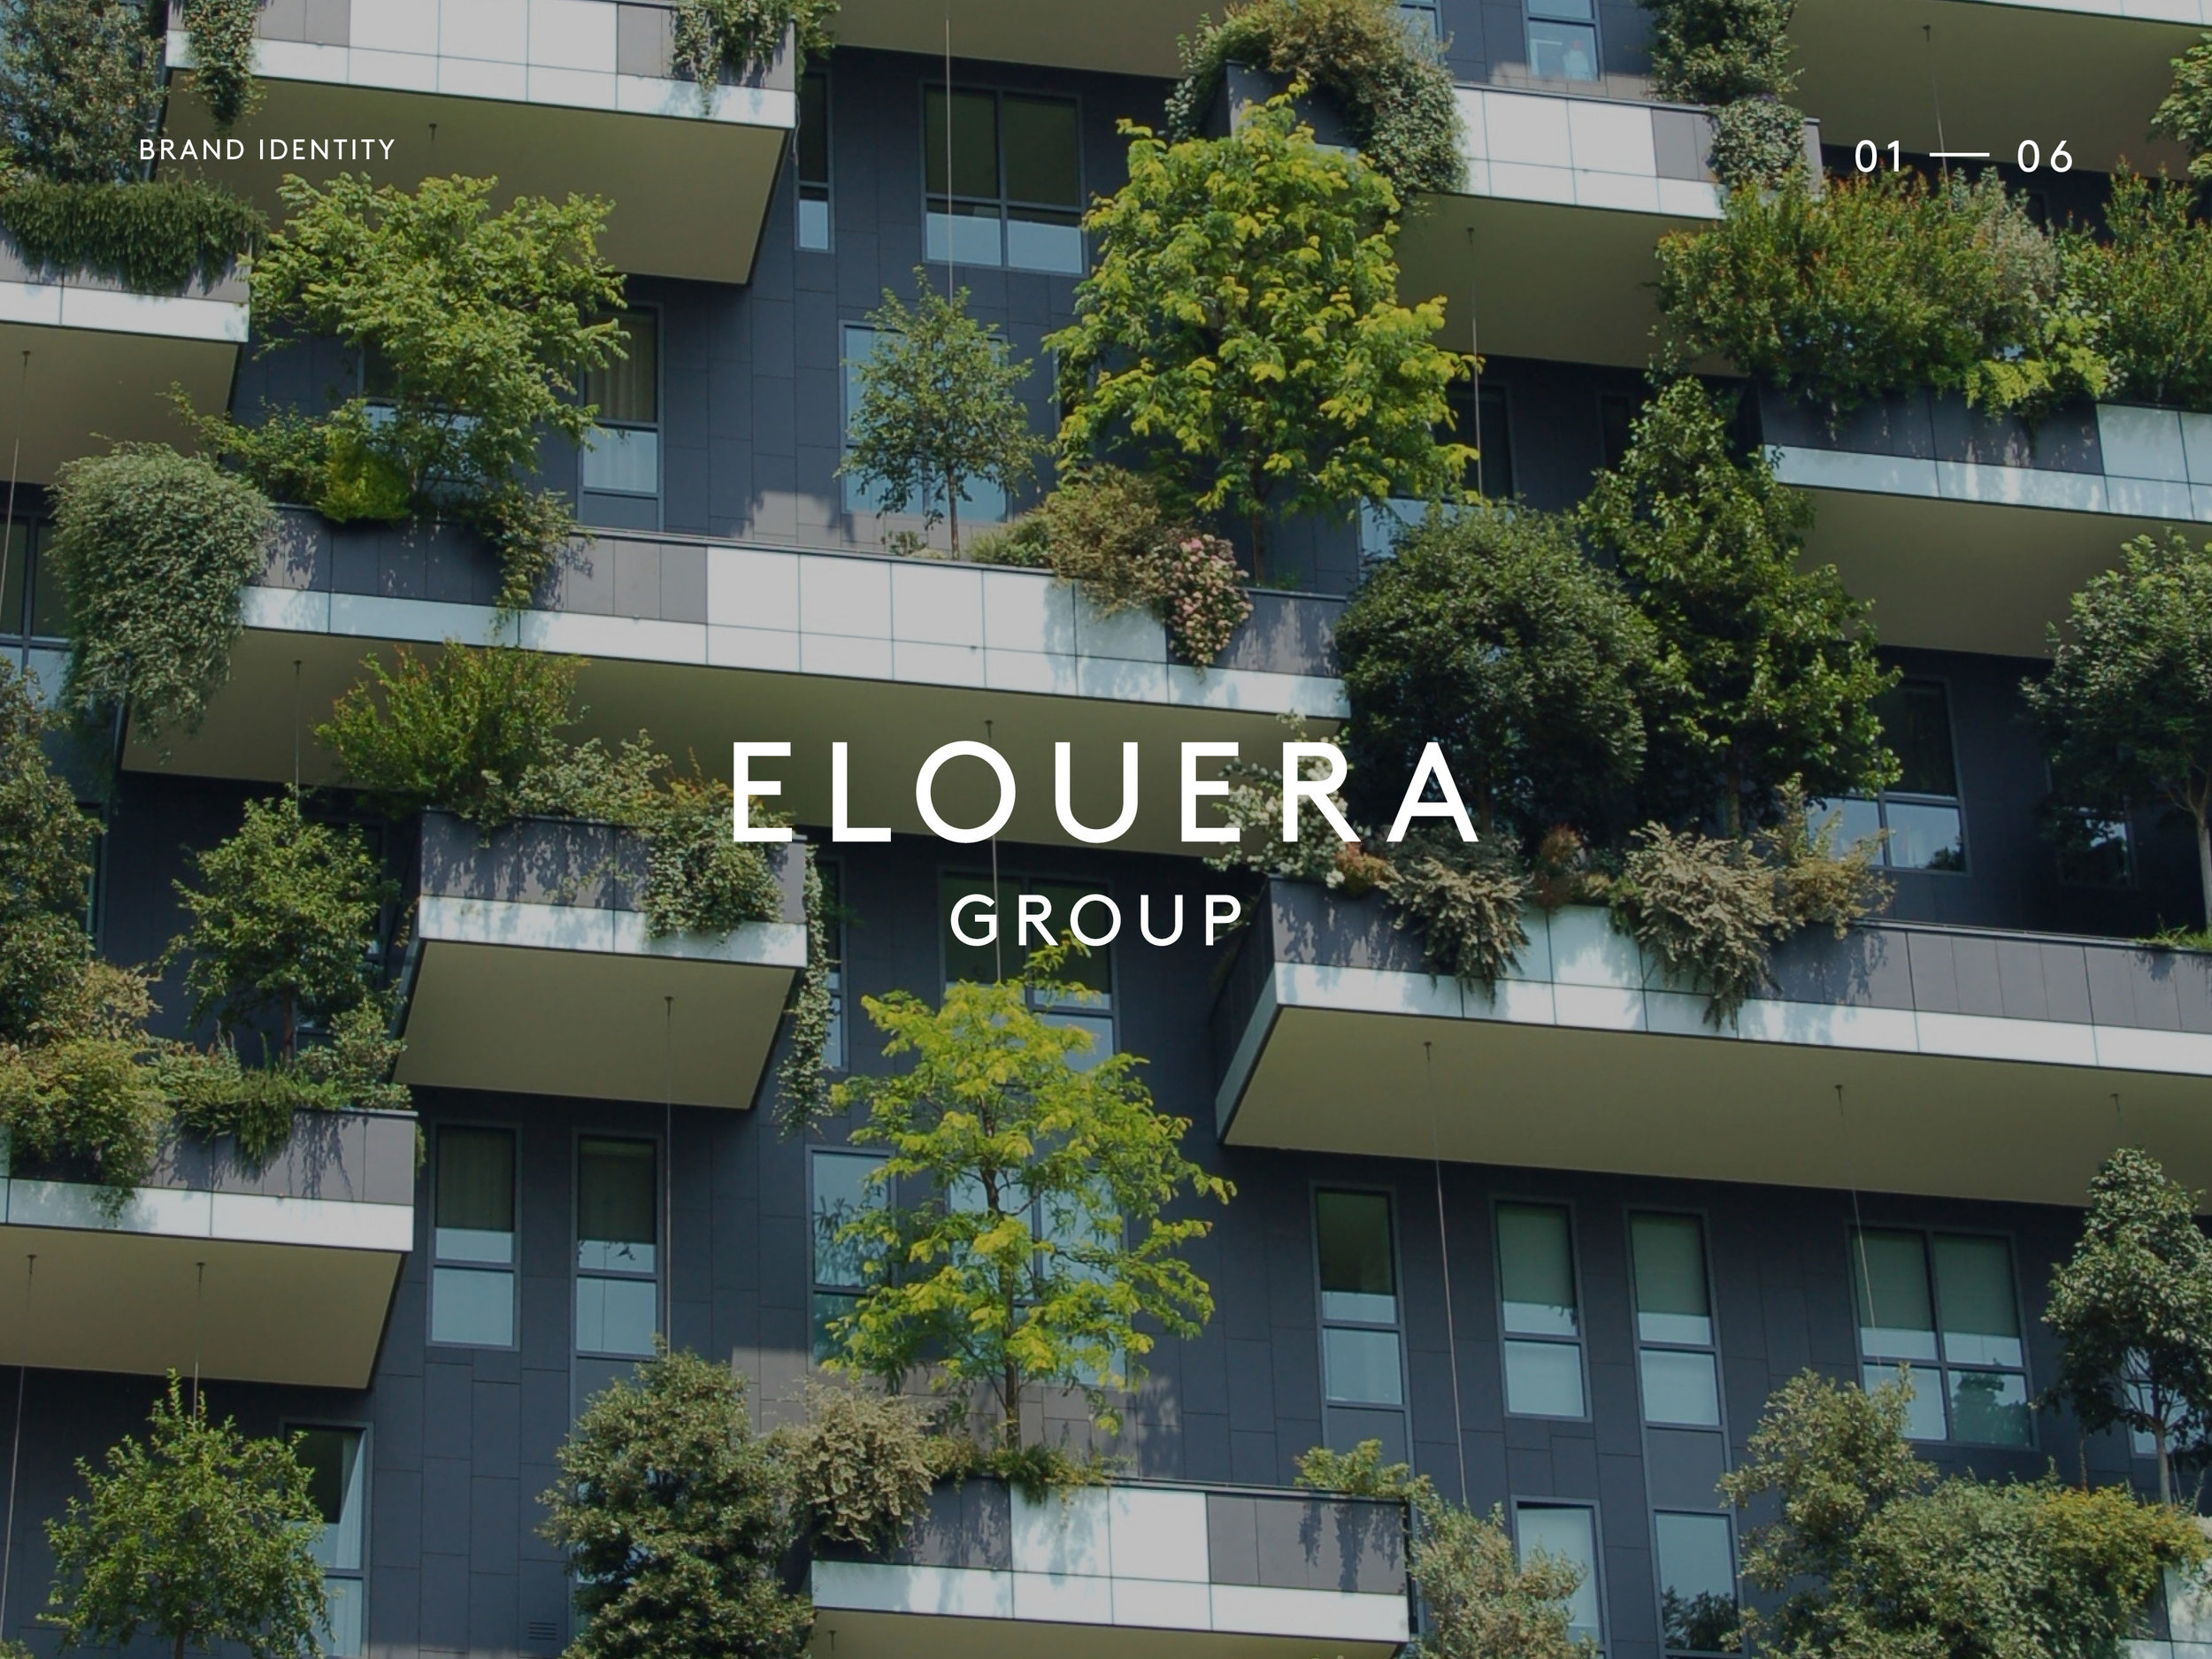 elouera-project-web-1.jpg